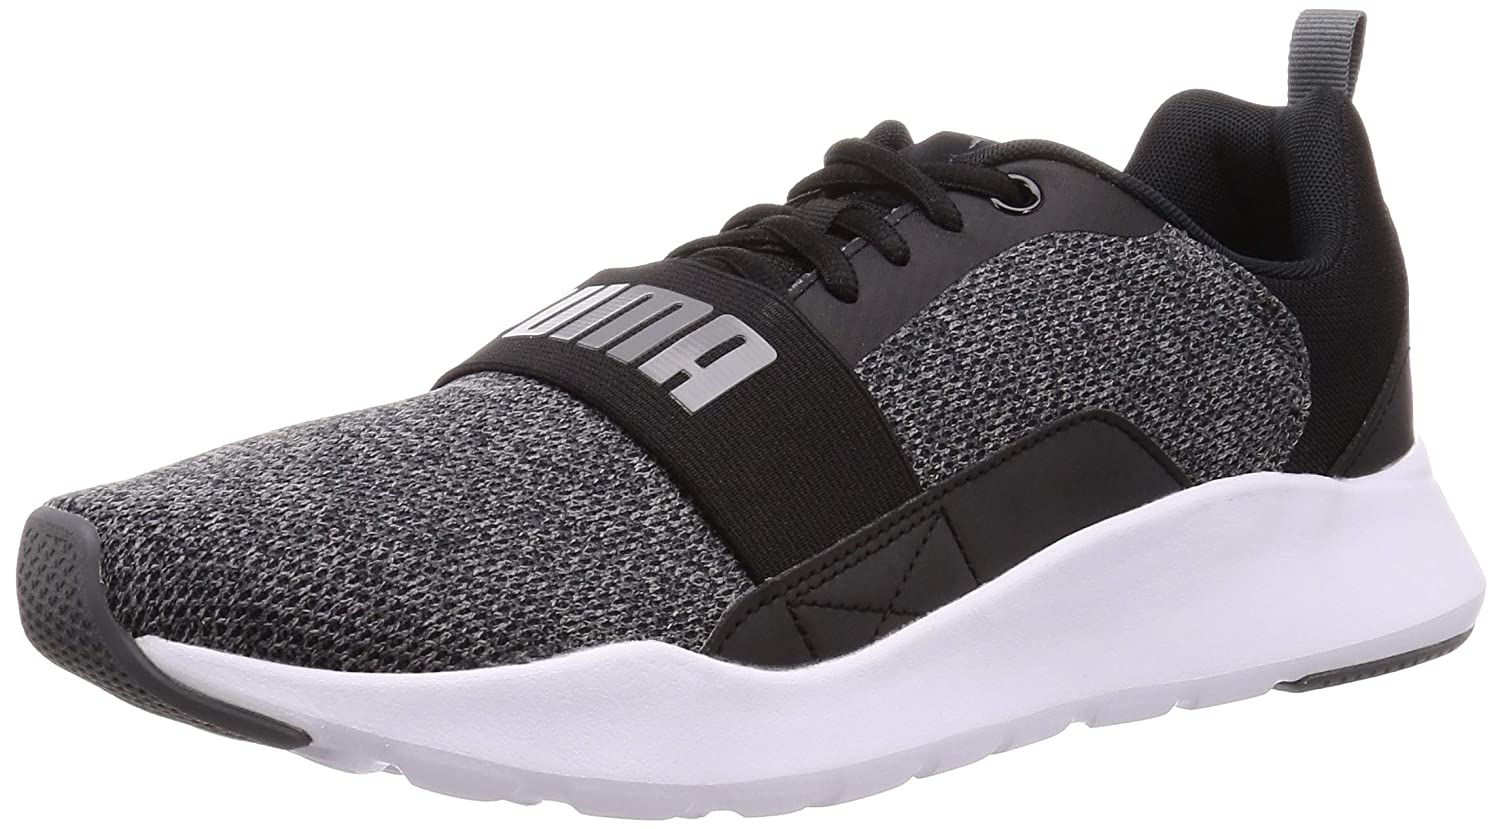 Puma Wired Mesh 2.0, Zapatilla, Puma Black-Castlerock, Talla 11 UK (46 EU): Amazon.es: Deportes y aire libre